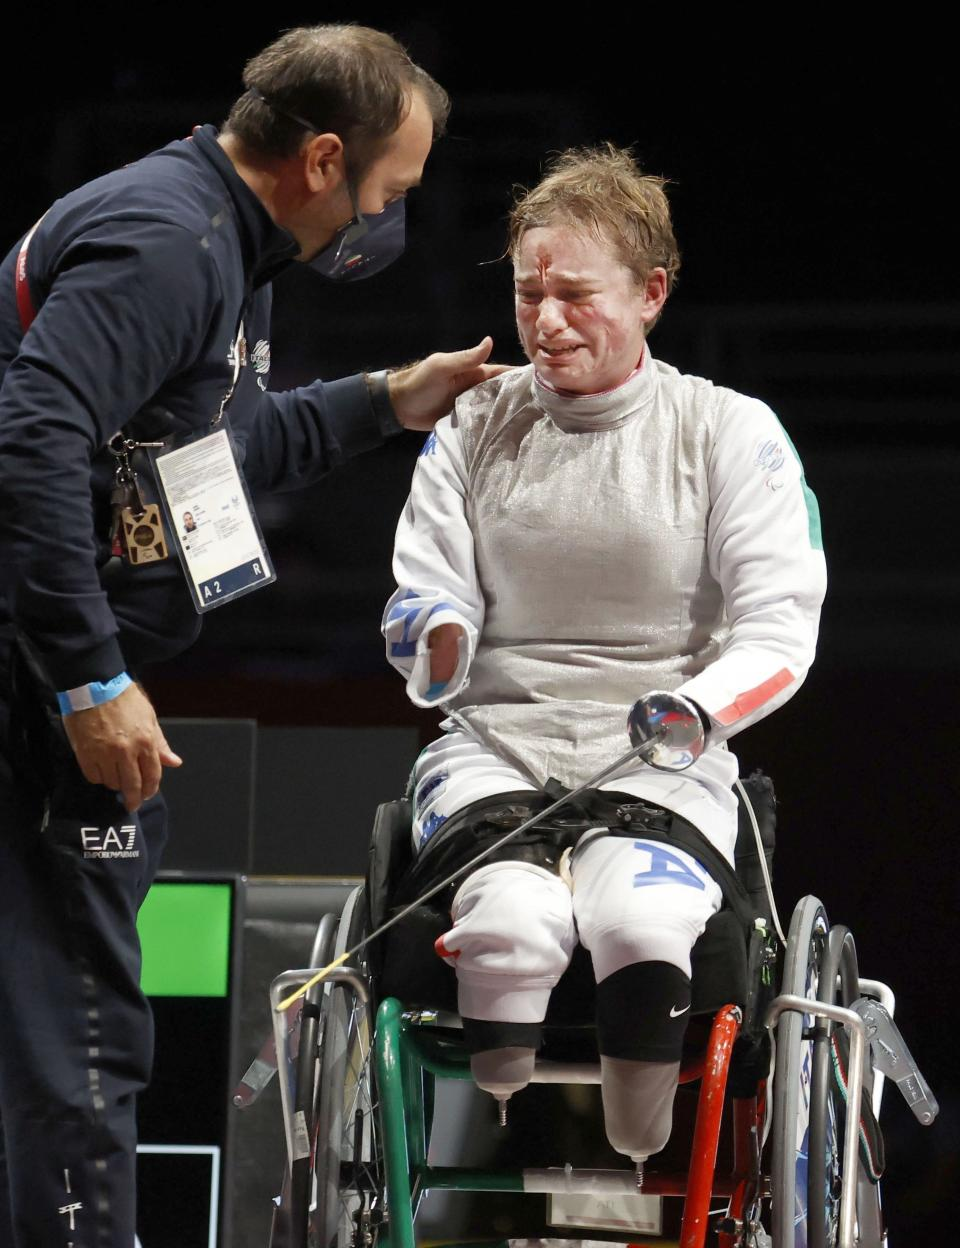 Italy's Beatrice Maria Vio celebrates after winning over China's Zhou Jingjing during their the wheelchair fencing women's foil Individual category B gold medal match in Chiba, near Tokyo, at the Tokyo 2020 Paralympic Games, Saturday, Aug. 28, 2021, in Tokyo, Japan. (Kyodo News via AP)